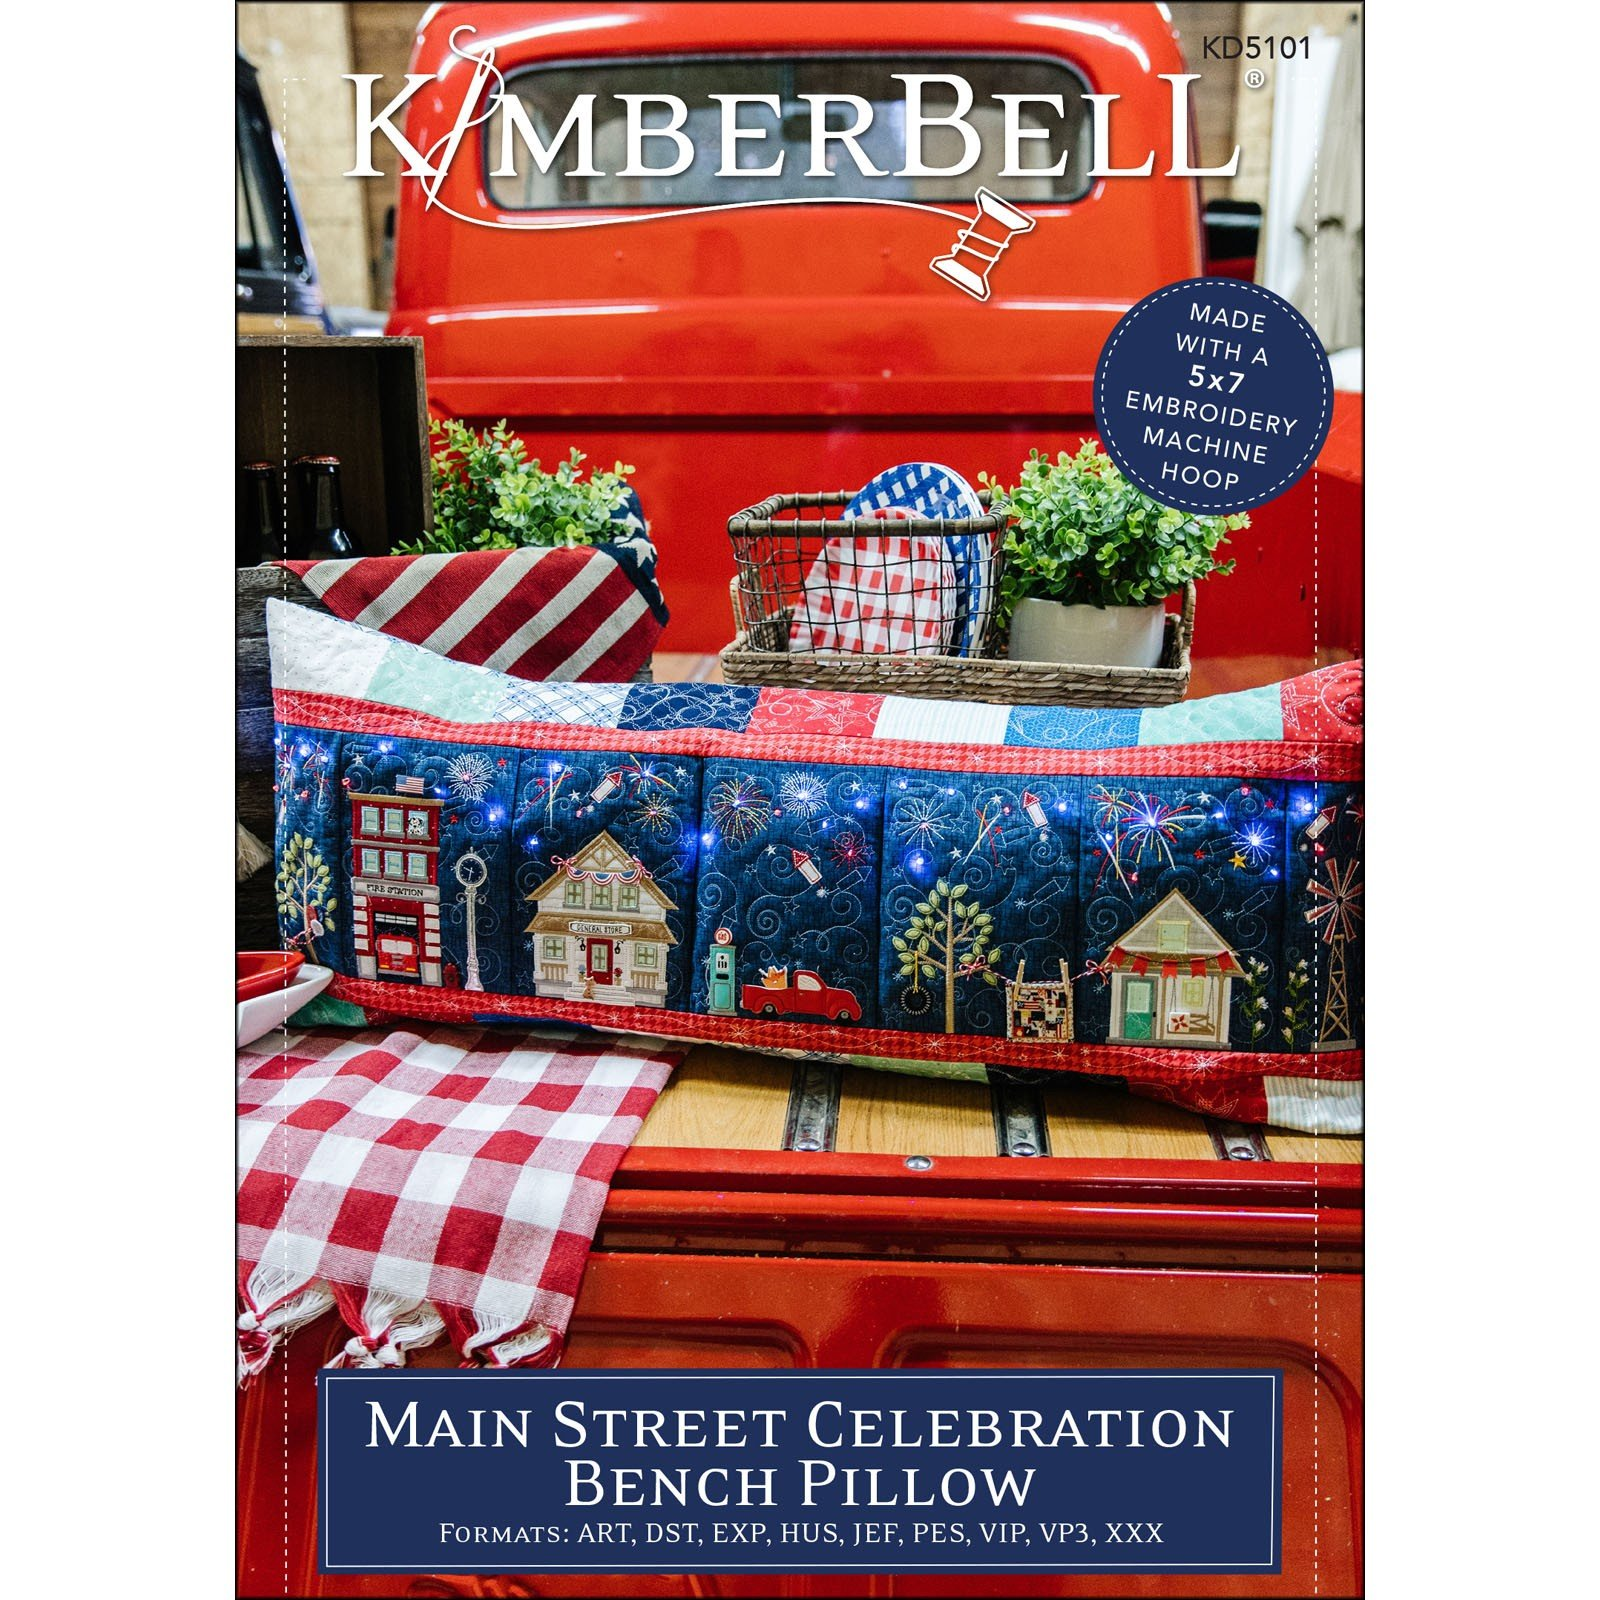 Main Street Celebration Bench Pillow (Embroidery CD) by Kimberbell